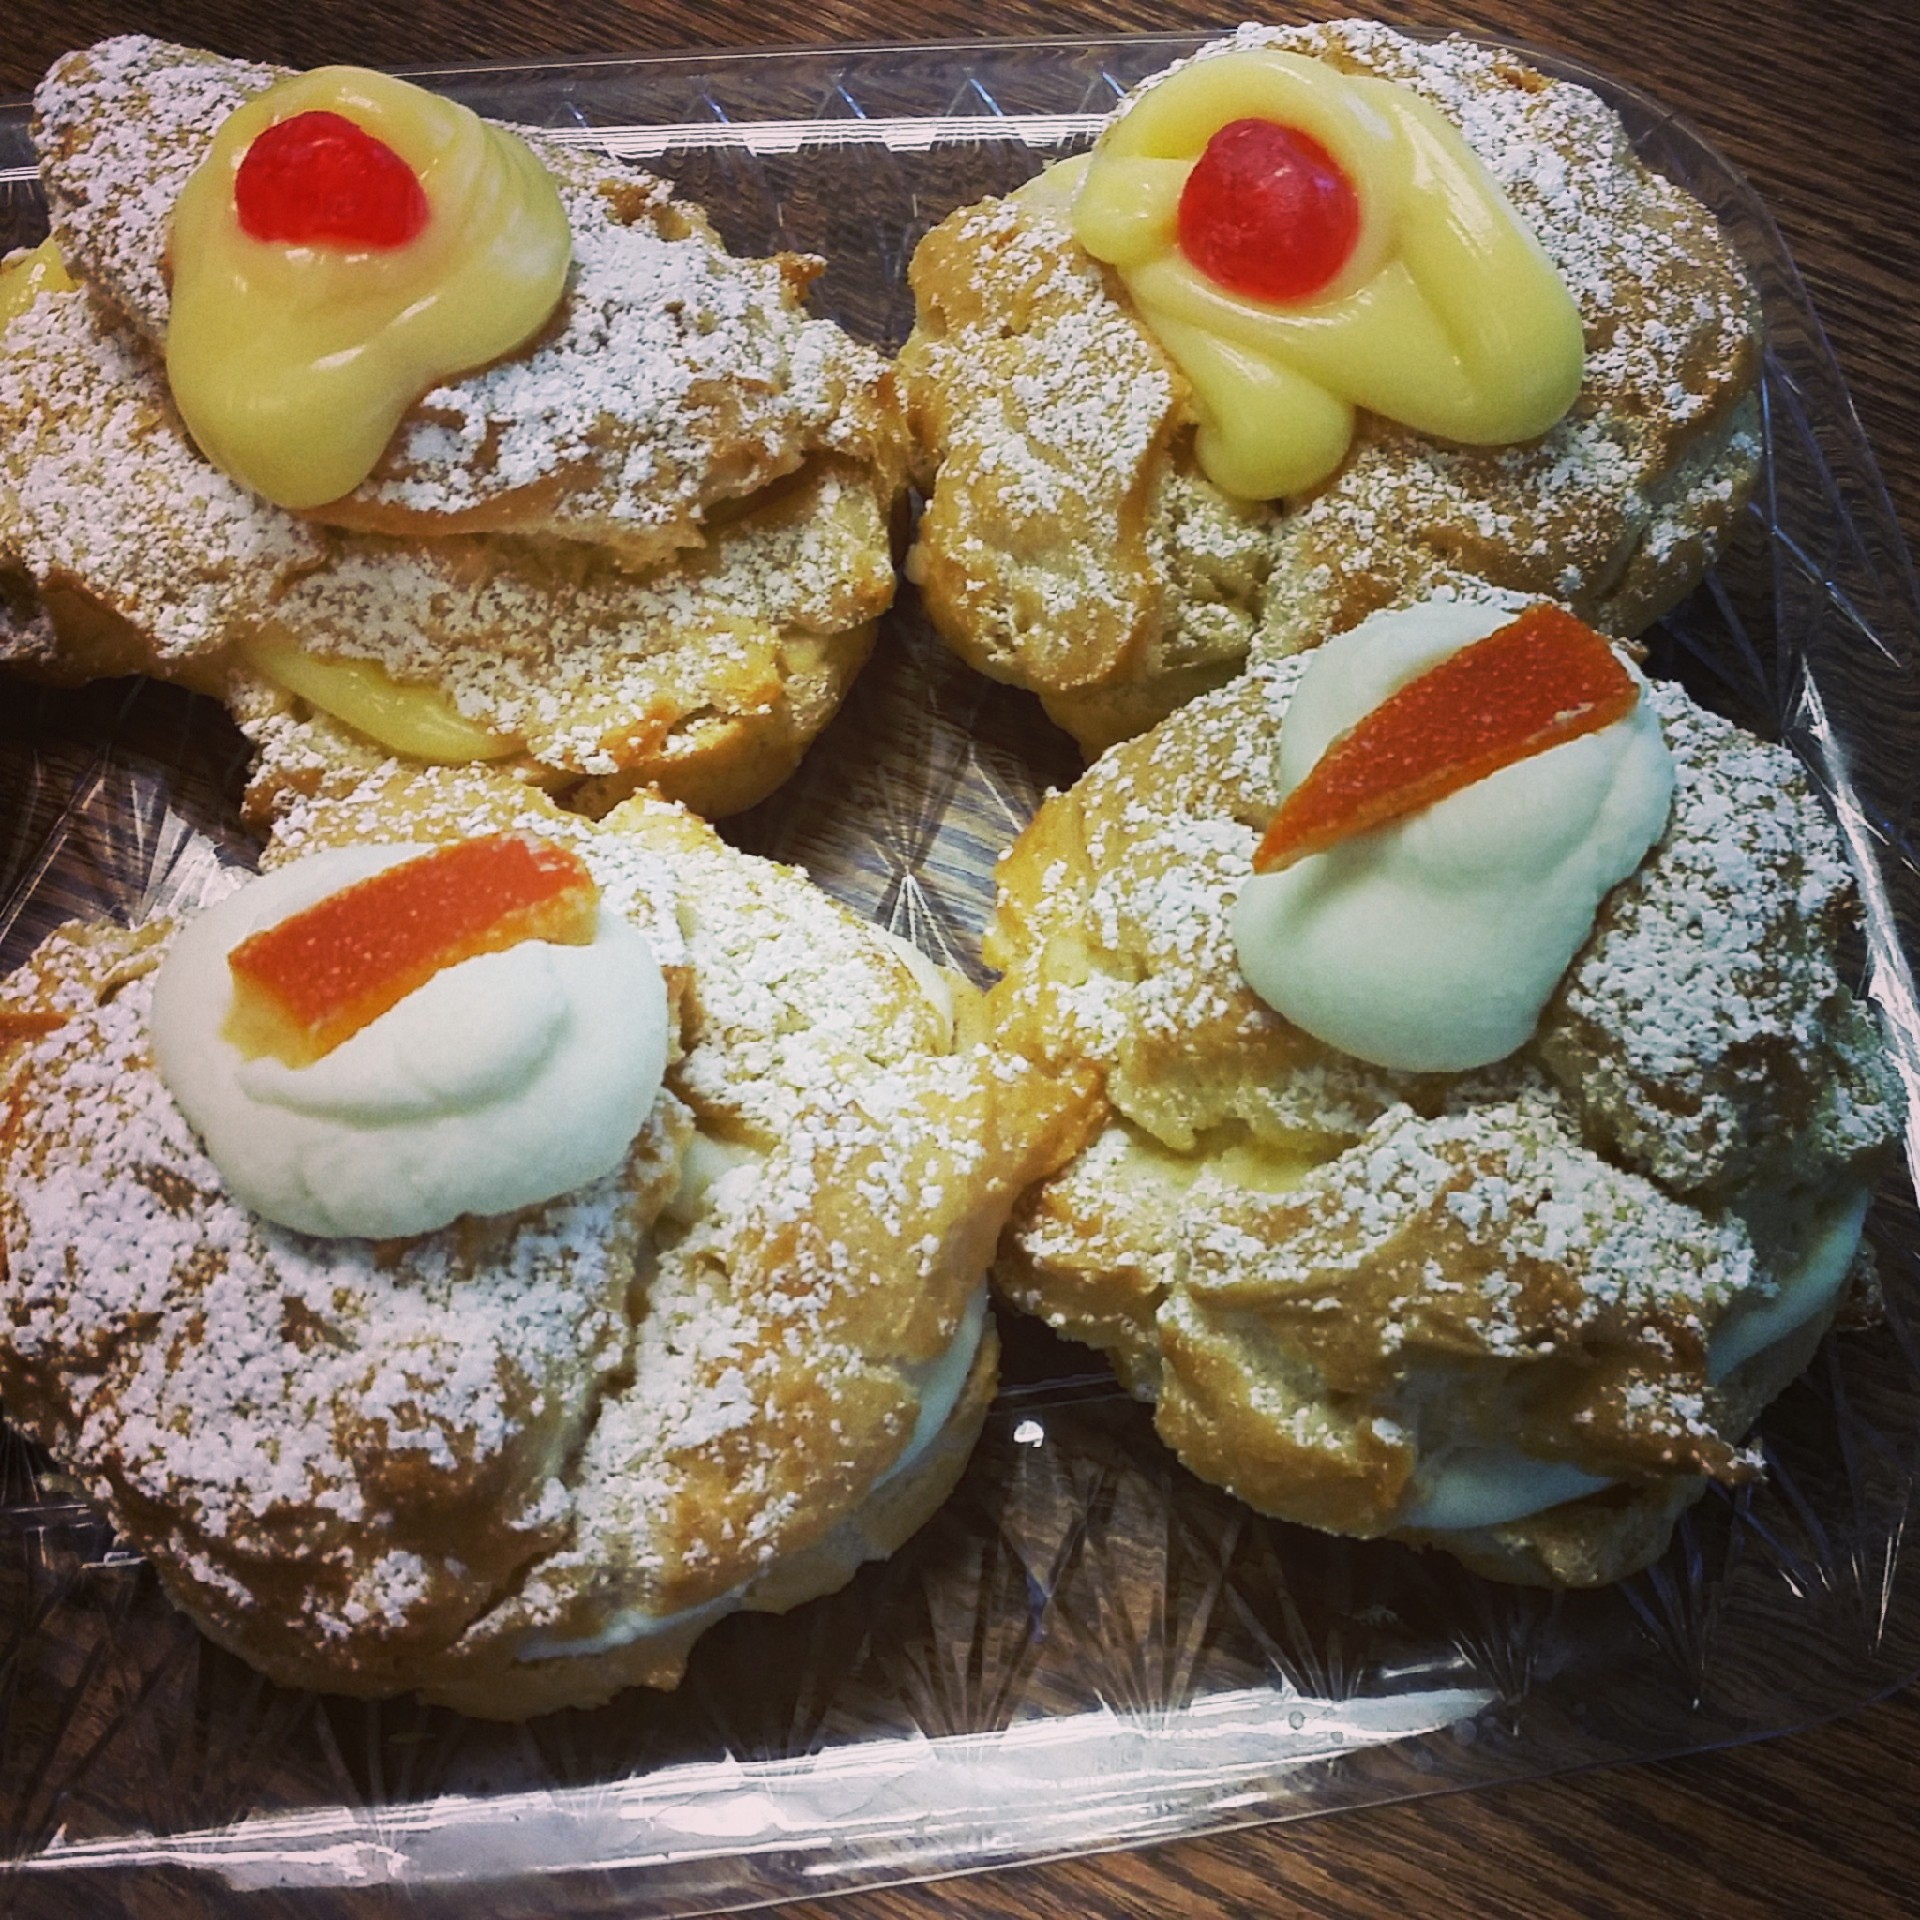 Our Zeppole are baked and filled with custard or ricotta. Made with cage-free eggs and all natural products.